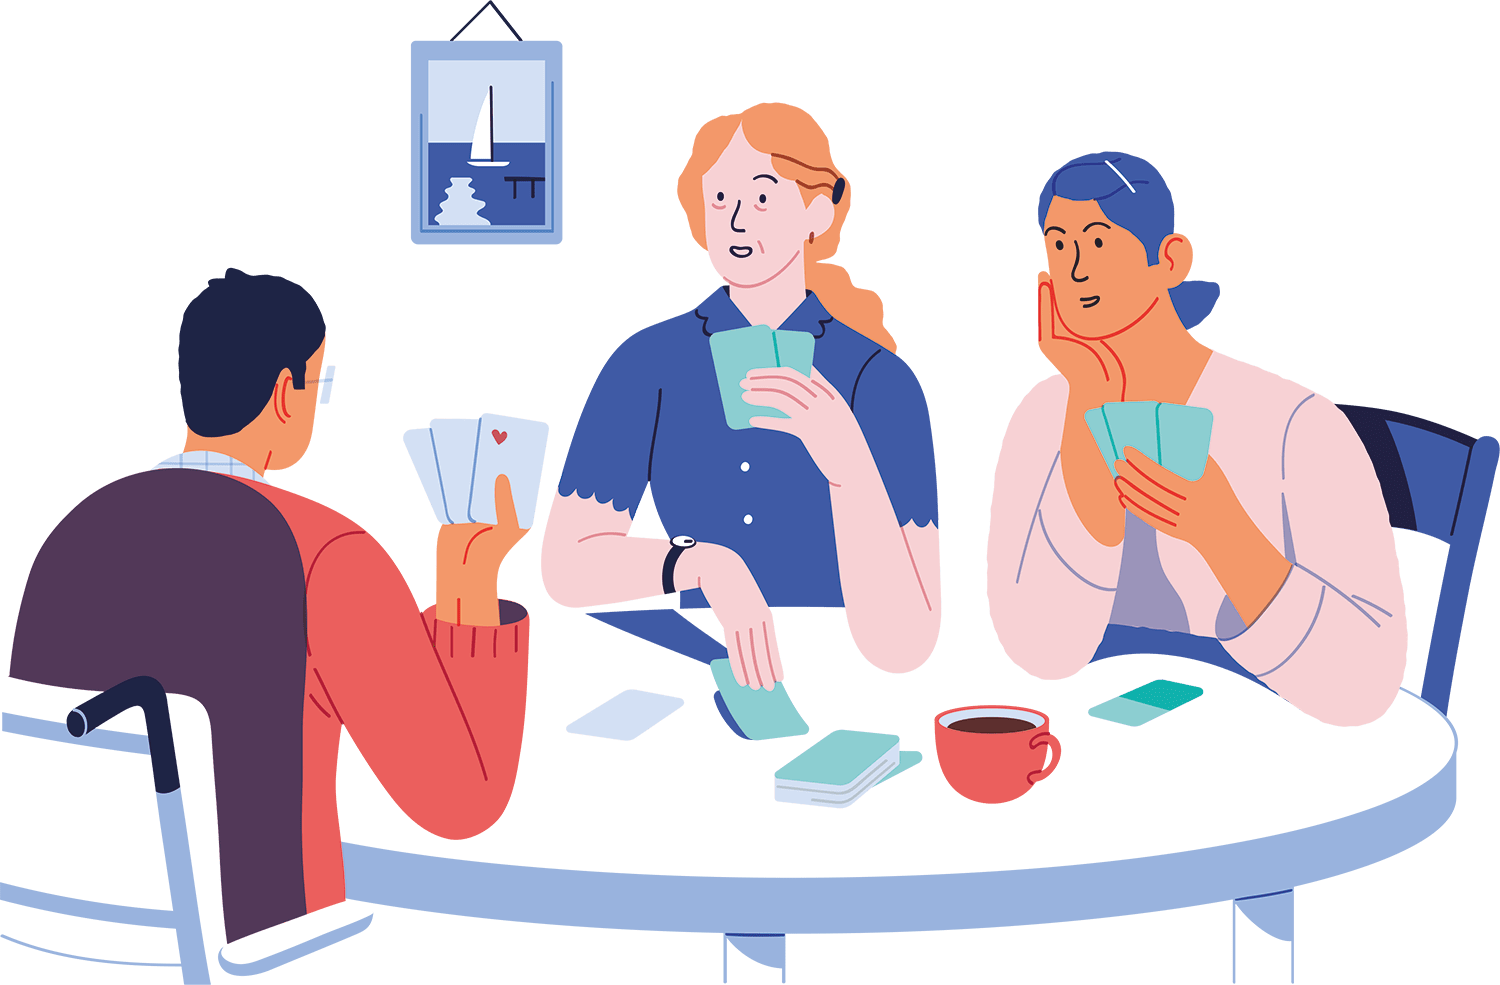 Playing card animation